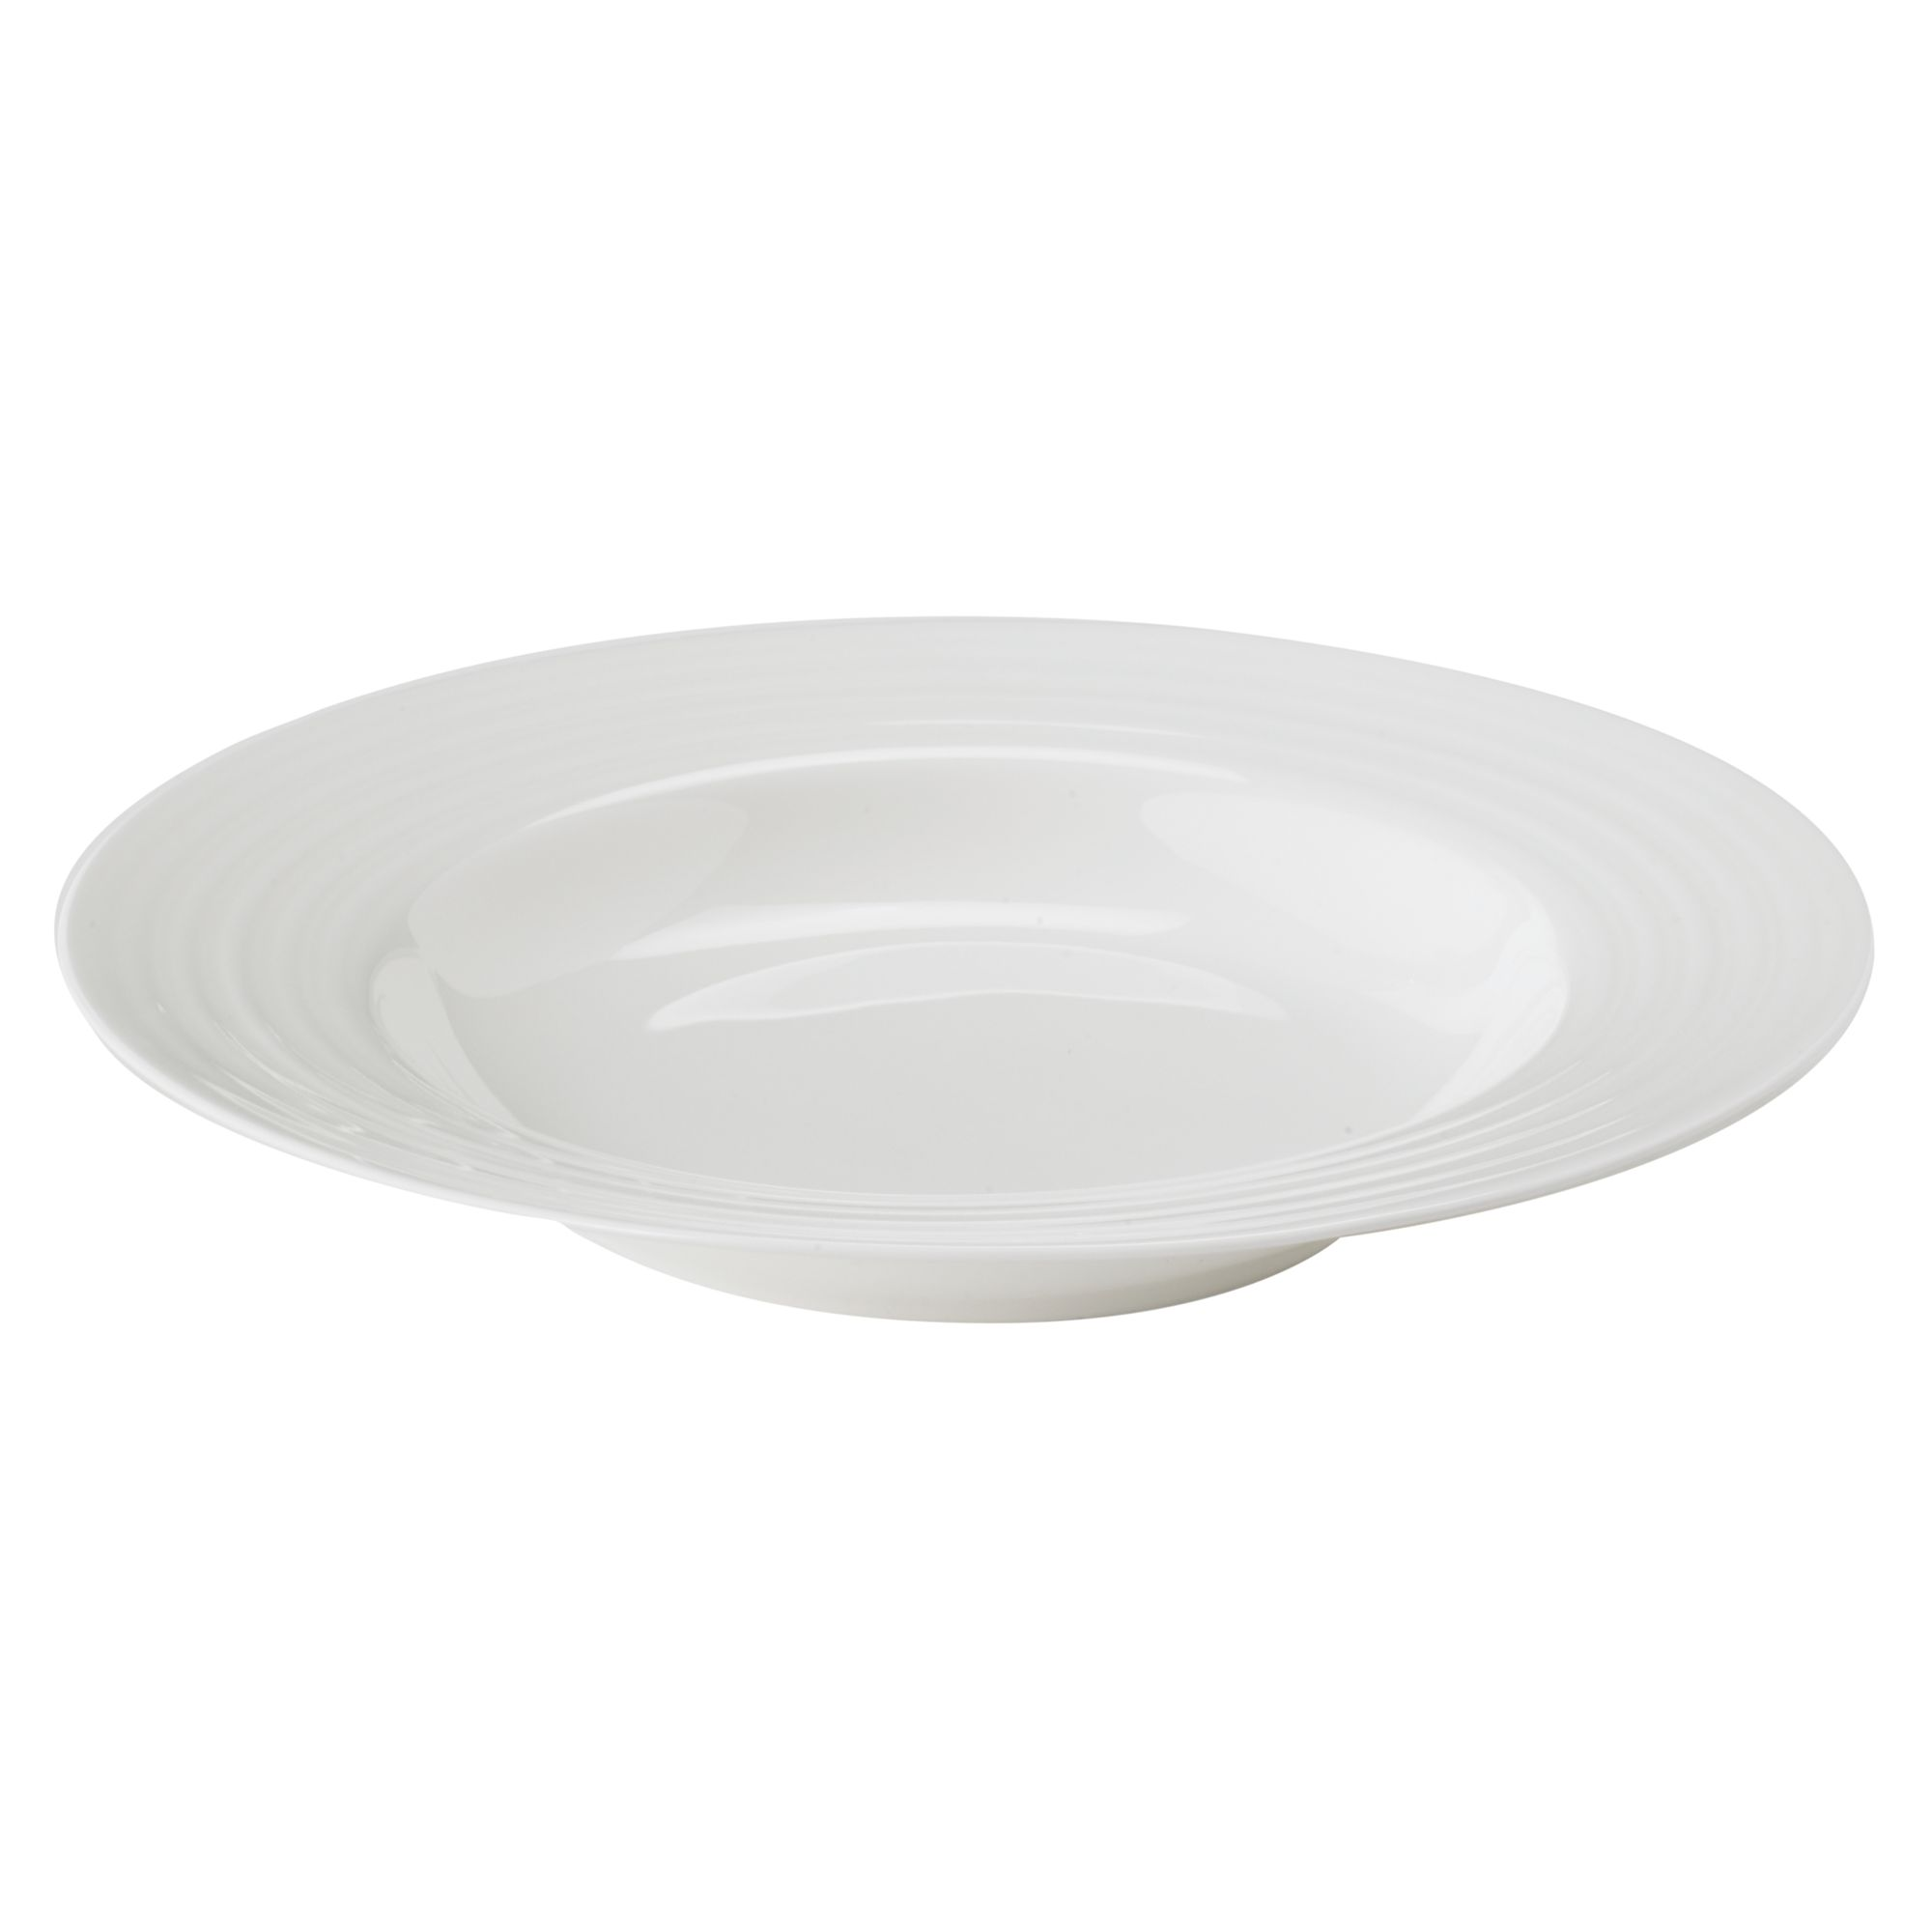 Soho Bone China Rim Pasta Bowl